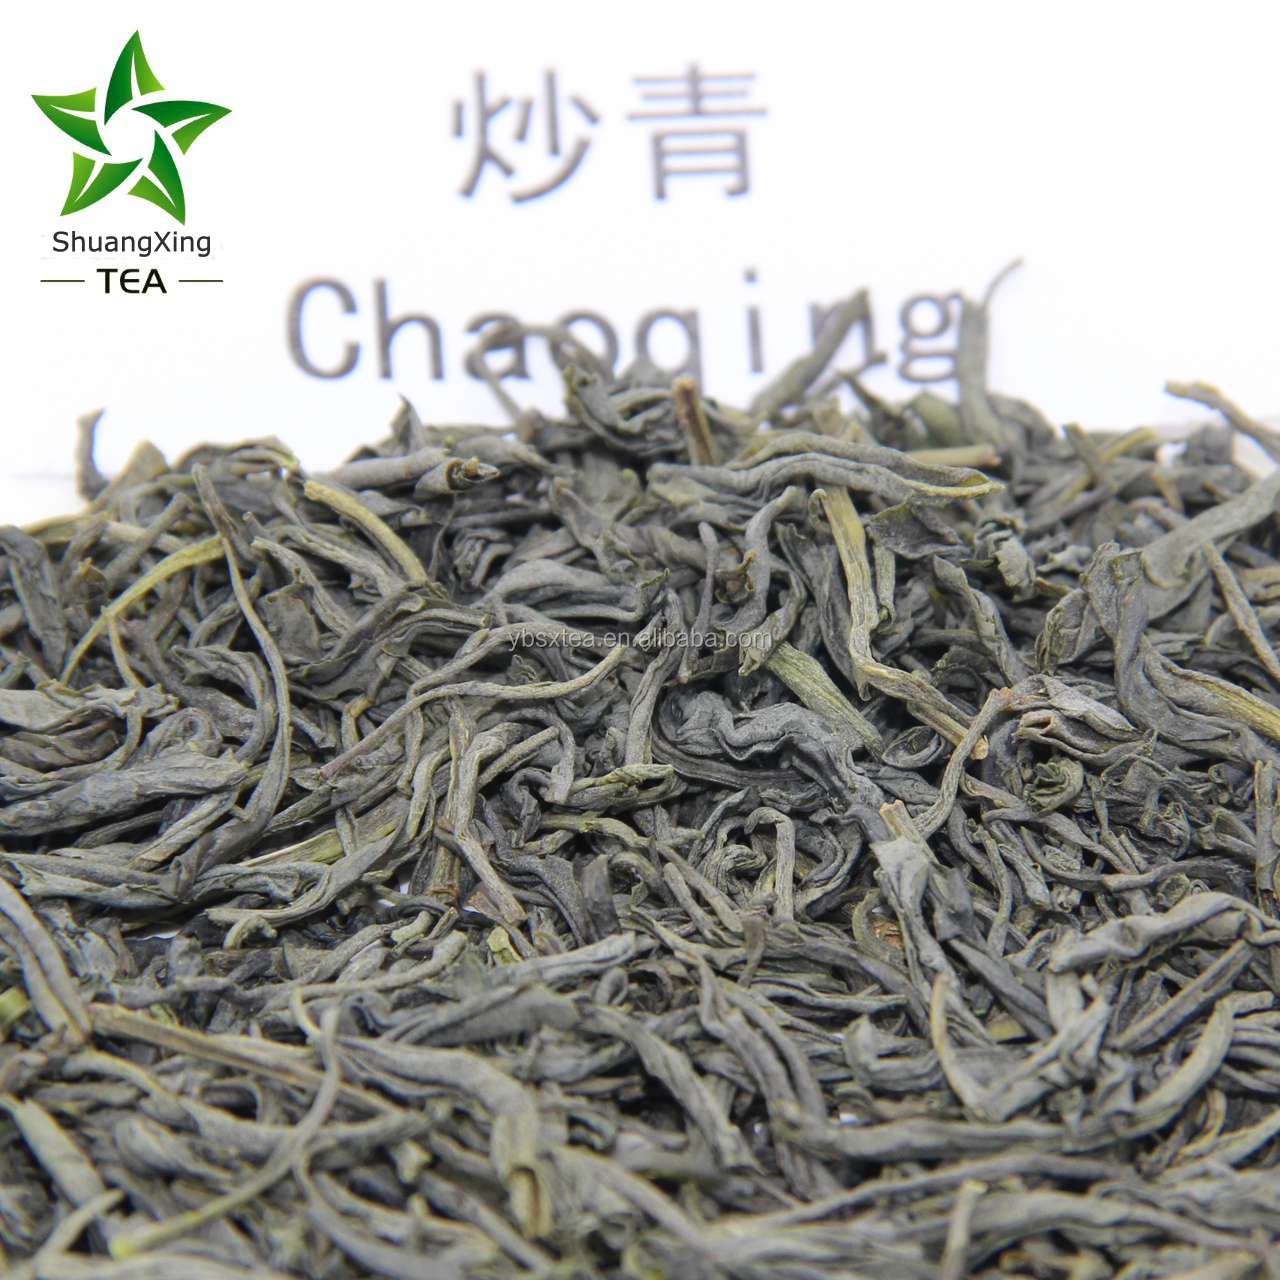 Chaoqing green tea hot sale loose leaf tea China famous tea